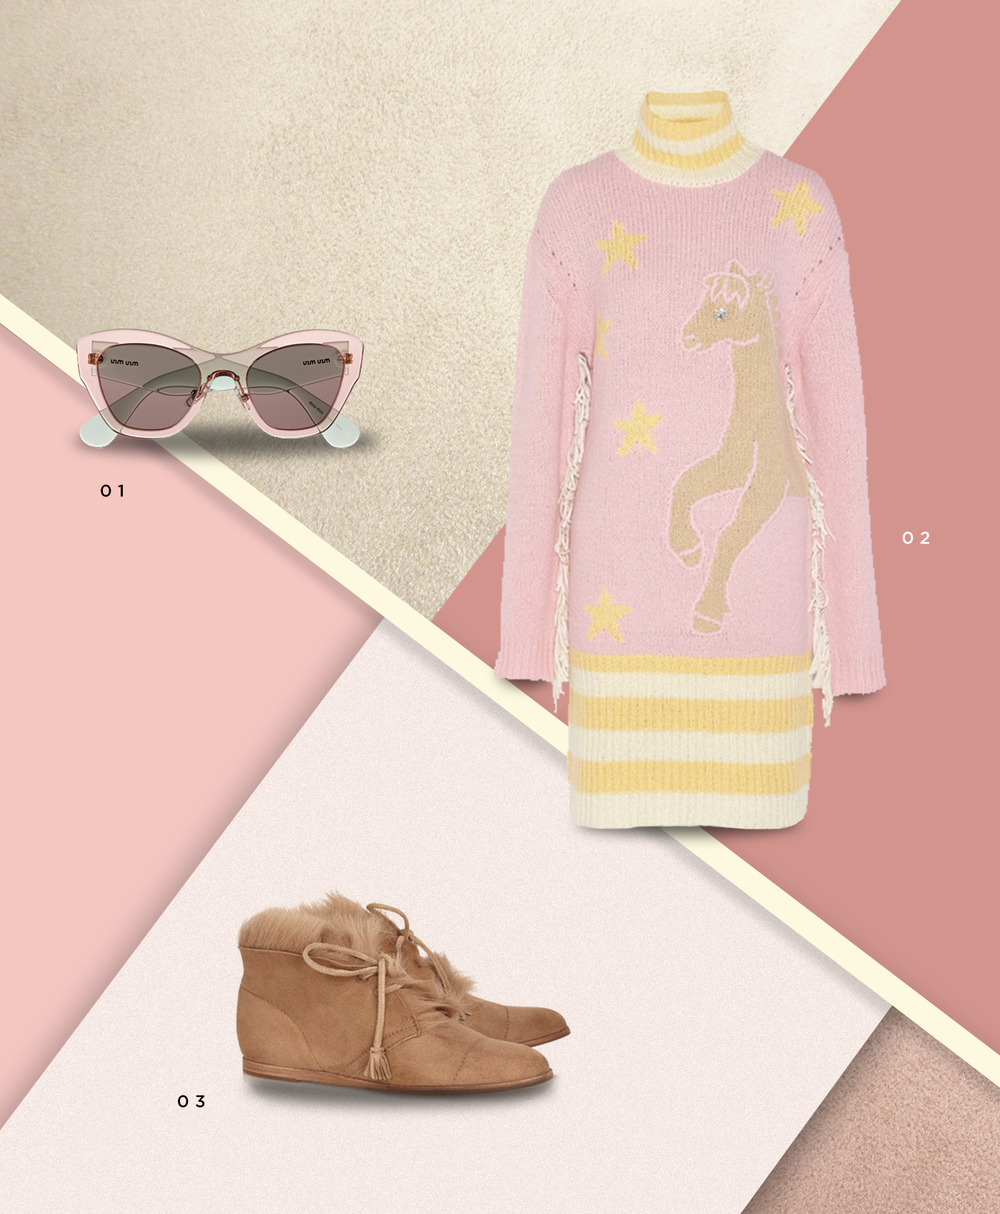 Maison-Mittweg-Looks-Miu-Miu-4-Ways-To-Wear-Pink